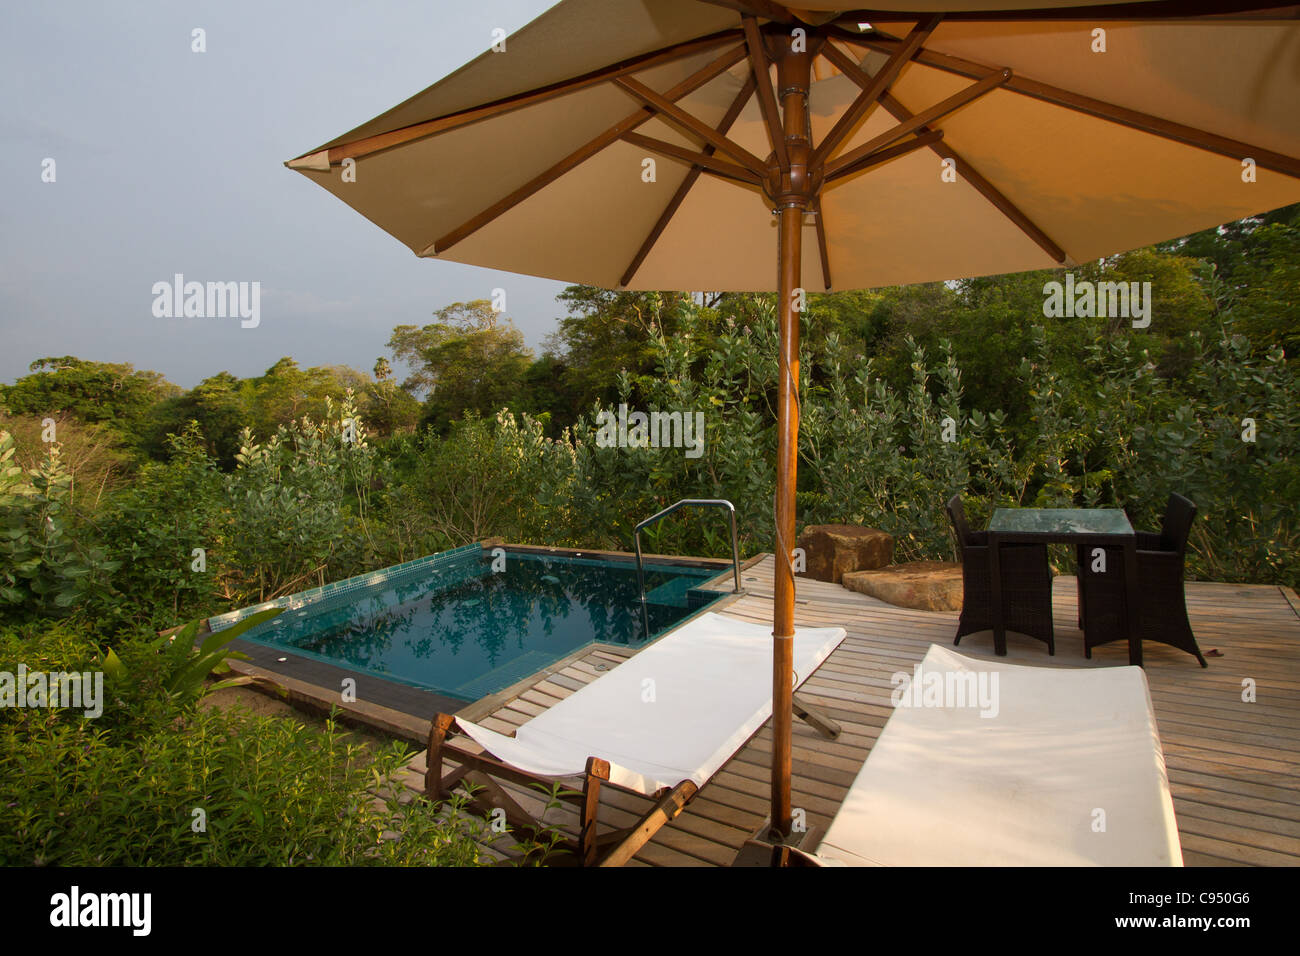 Tauchbecken Outdoor Whirlpool Und Tauchbecken Privatpool Im Ulagalla Resort Luxuriöse Tropische Art Boutique-hotel Befindet Sich Am Thirappane, Sri Lanka Stockfotografie - Alamy